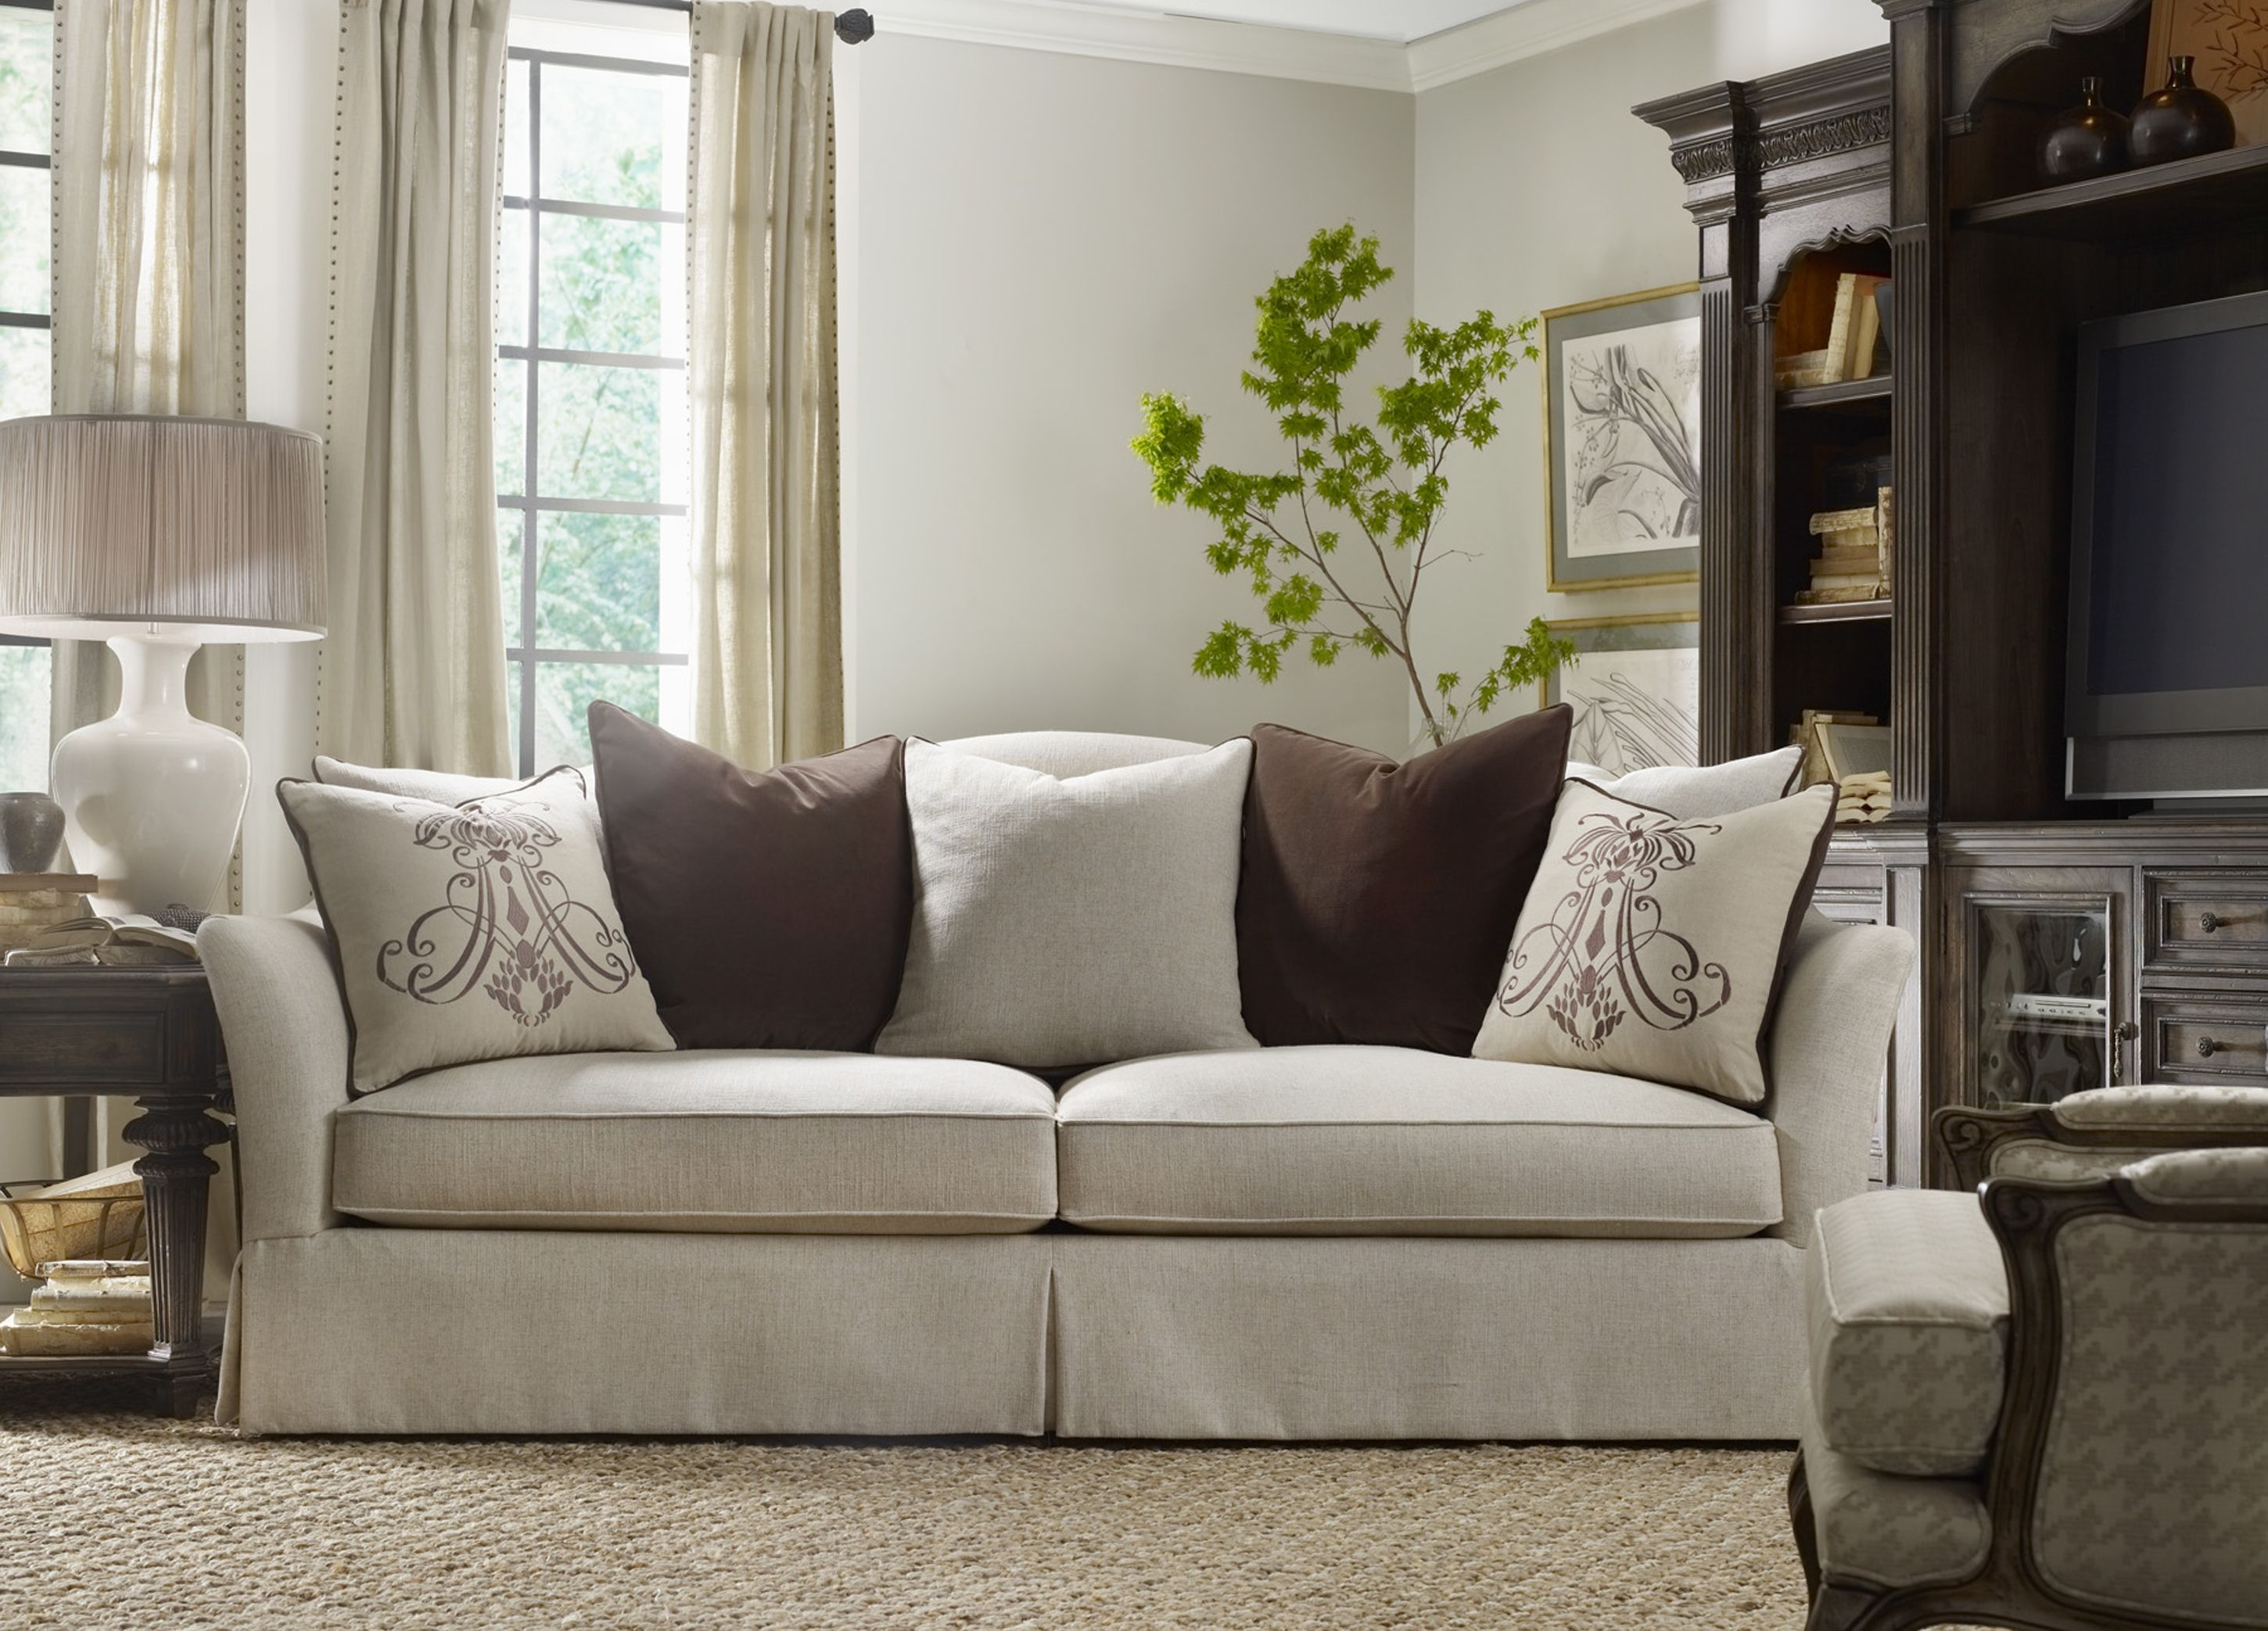 Best The Beauty Of A White Sofa And Oversized Pillows 400 x 300